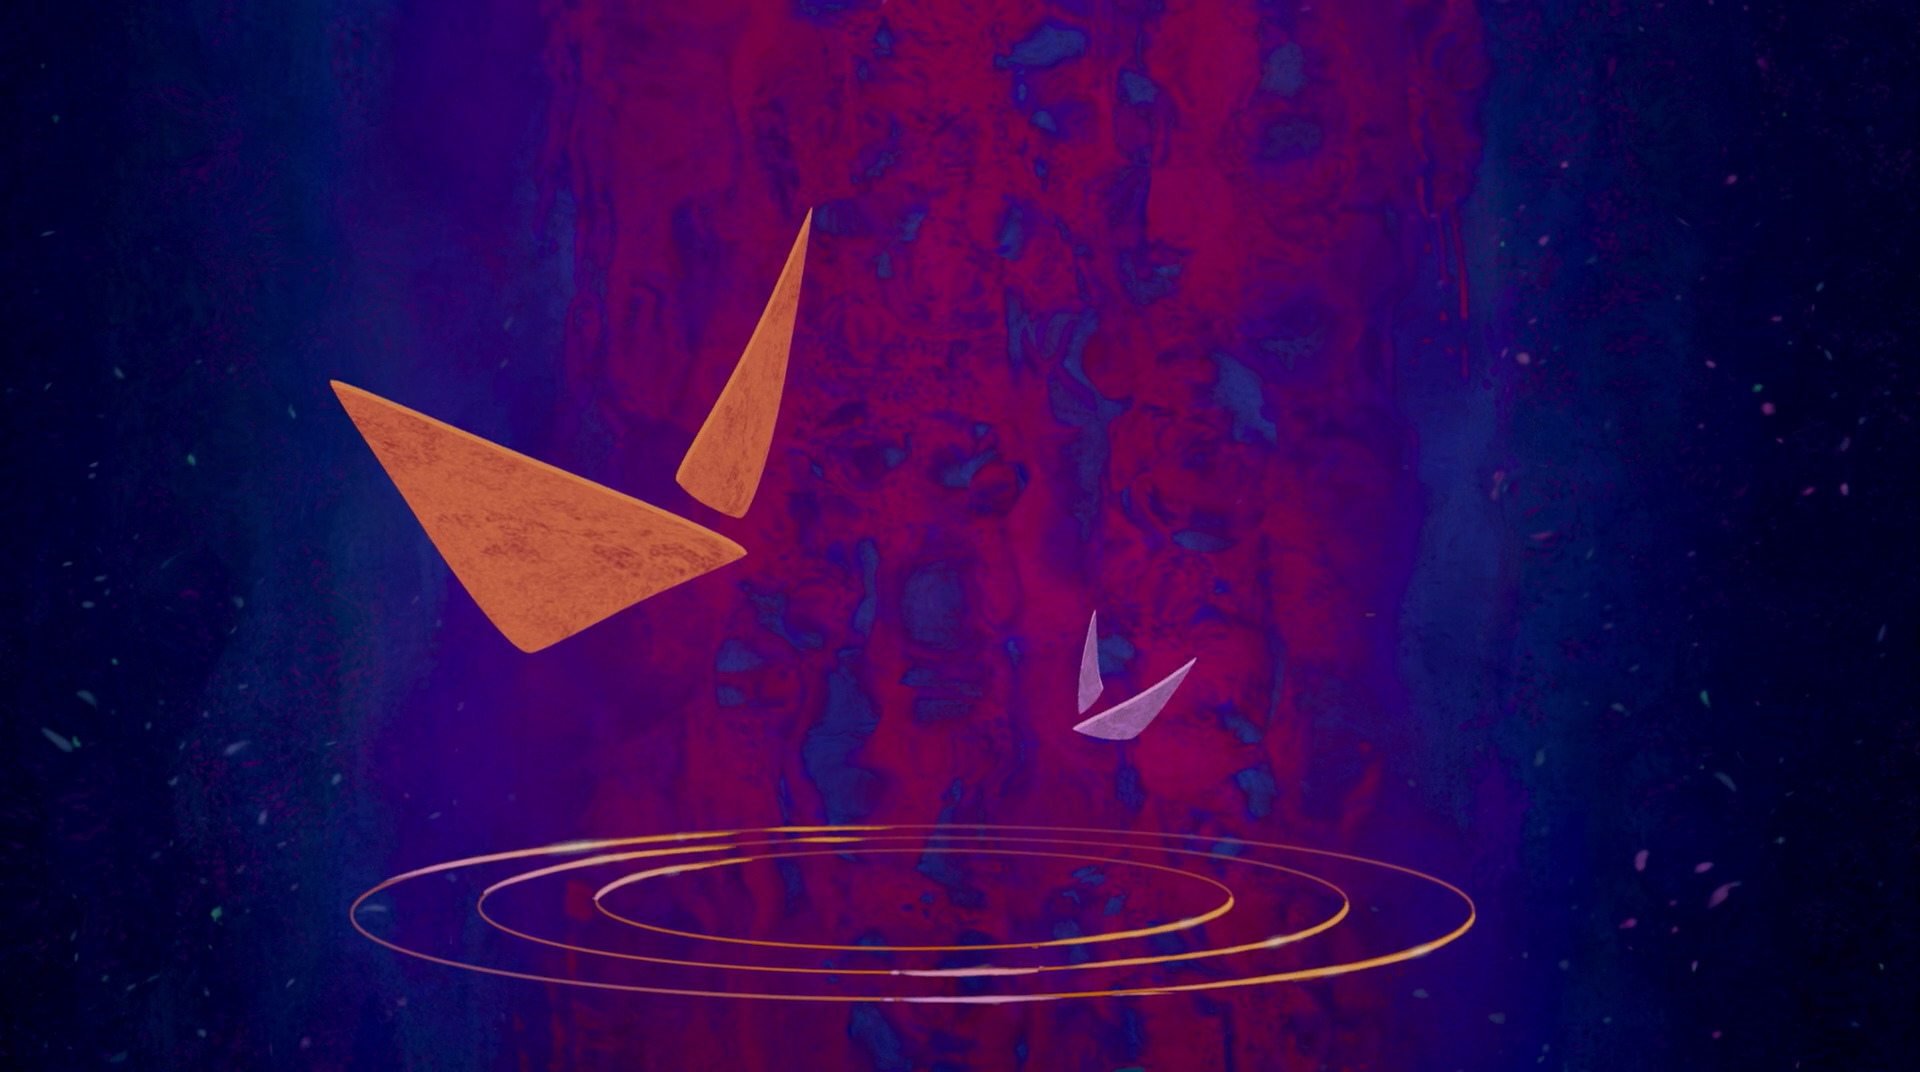 File:Fantasia playful triangles.png